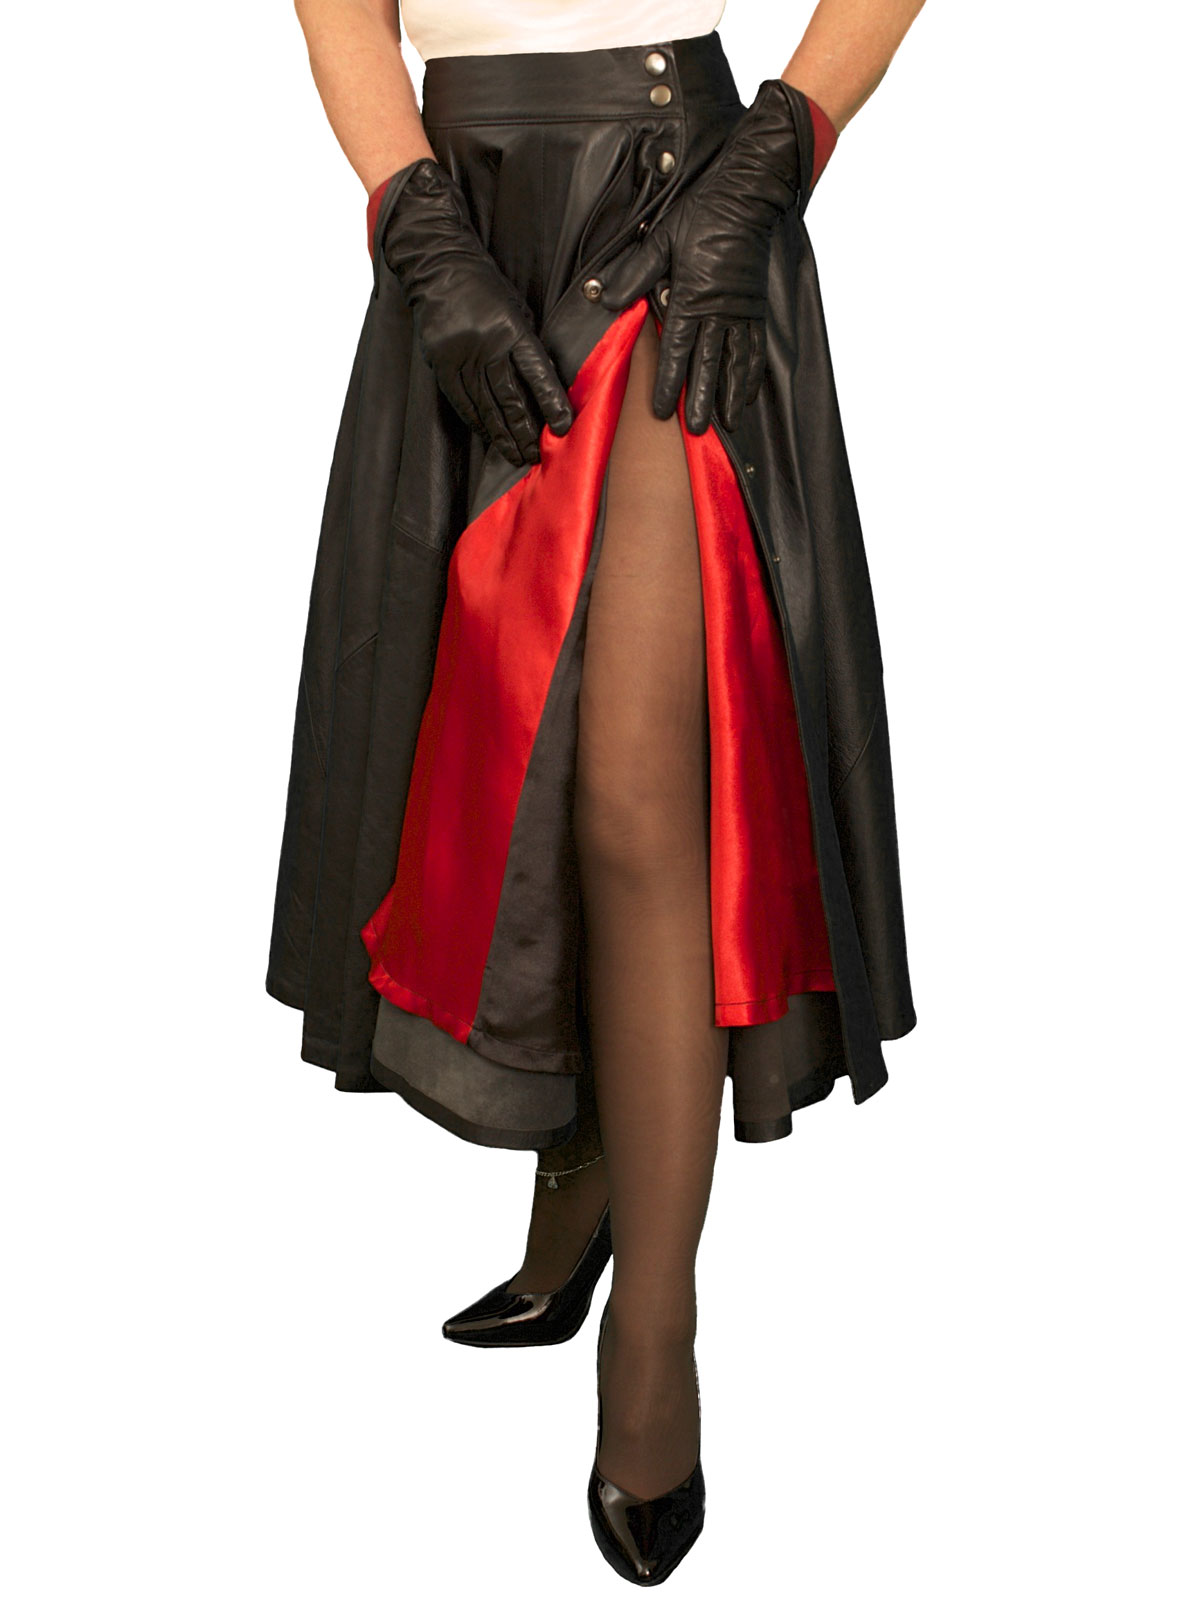 Black Leather Full Midi Skirt, black/red lining - Tout Ensemble